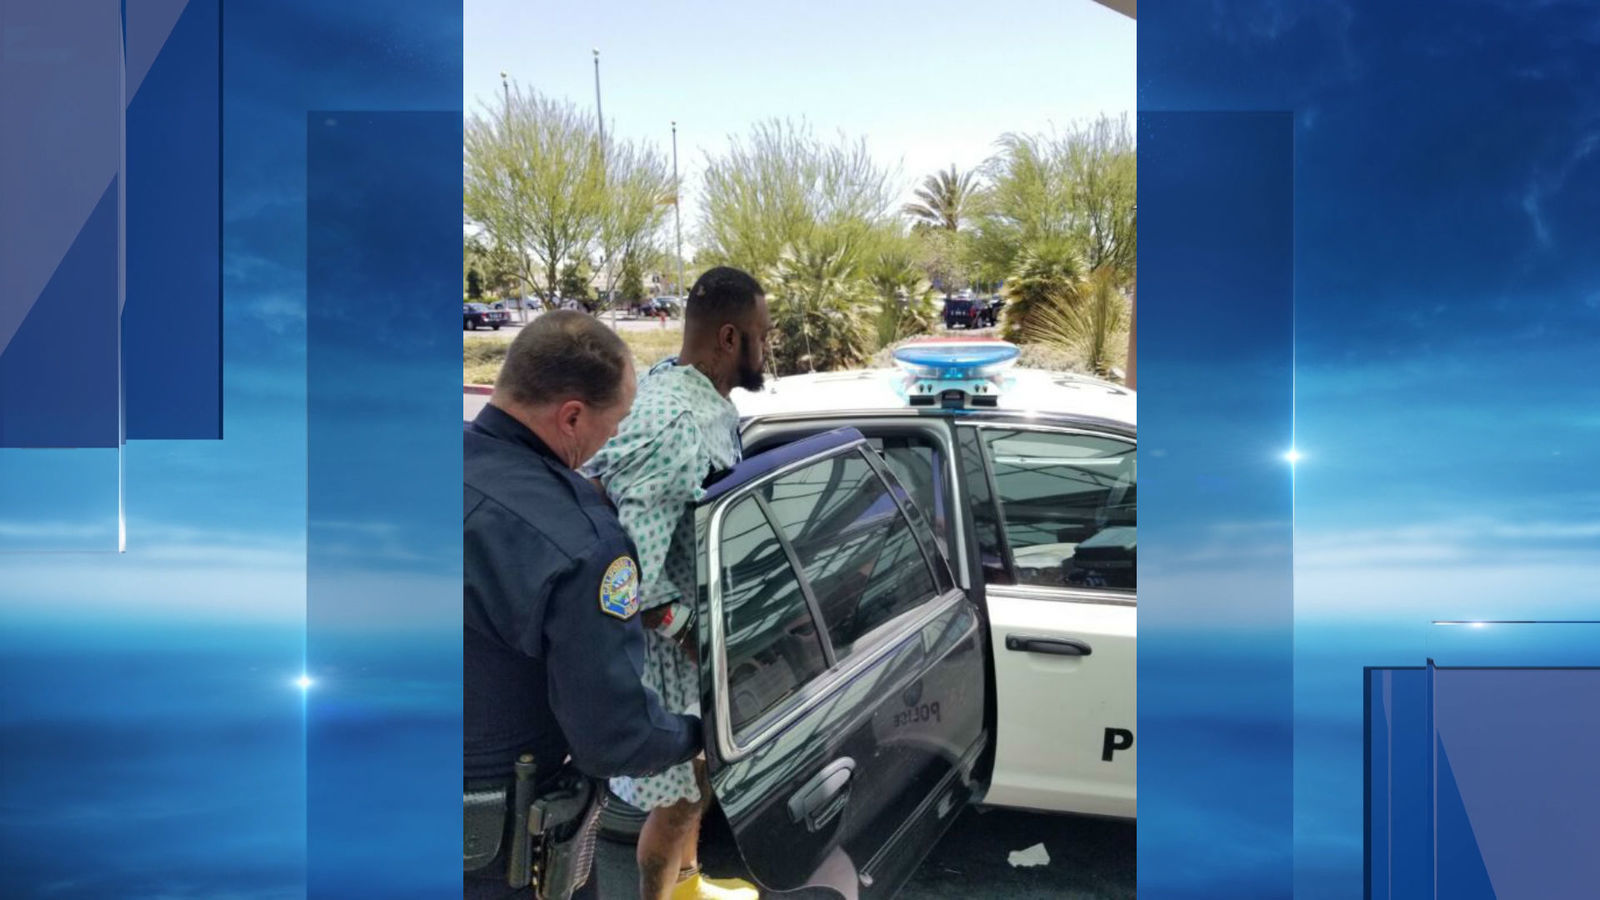 Officers in California City, Calif. arresting{ }31 year-old Keith Zeldon who is suspected of being under the influence during a car crash involving an ambulance. Photo provided by the California City Police Department Saturday, April 28, 2018.{ }